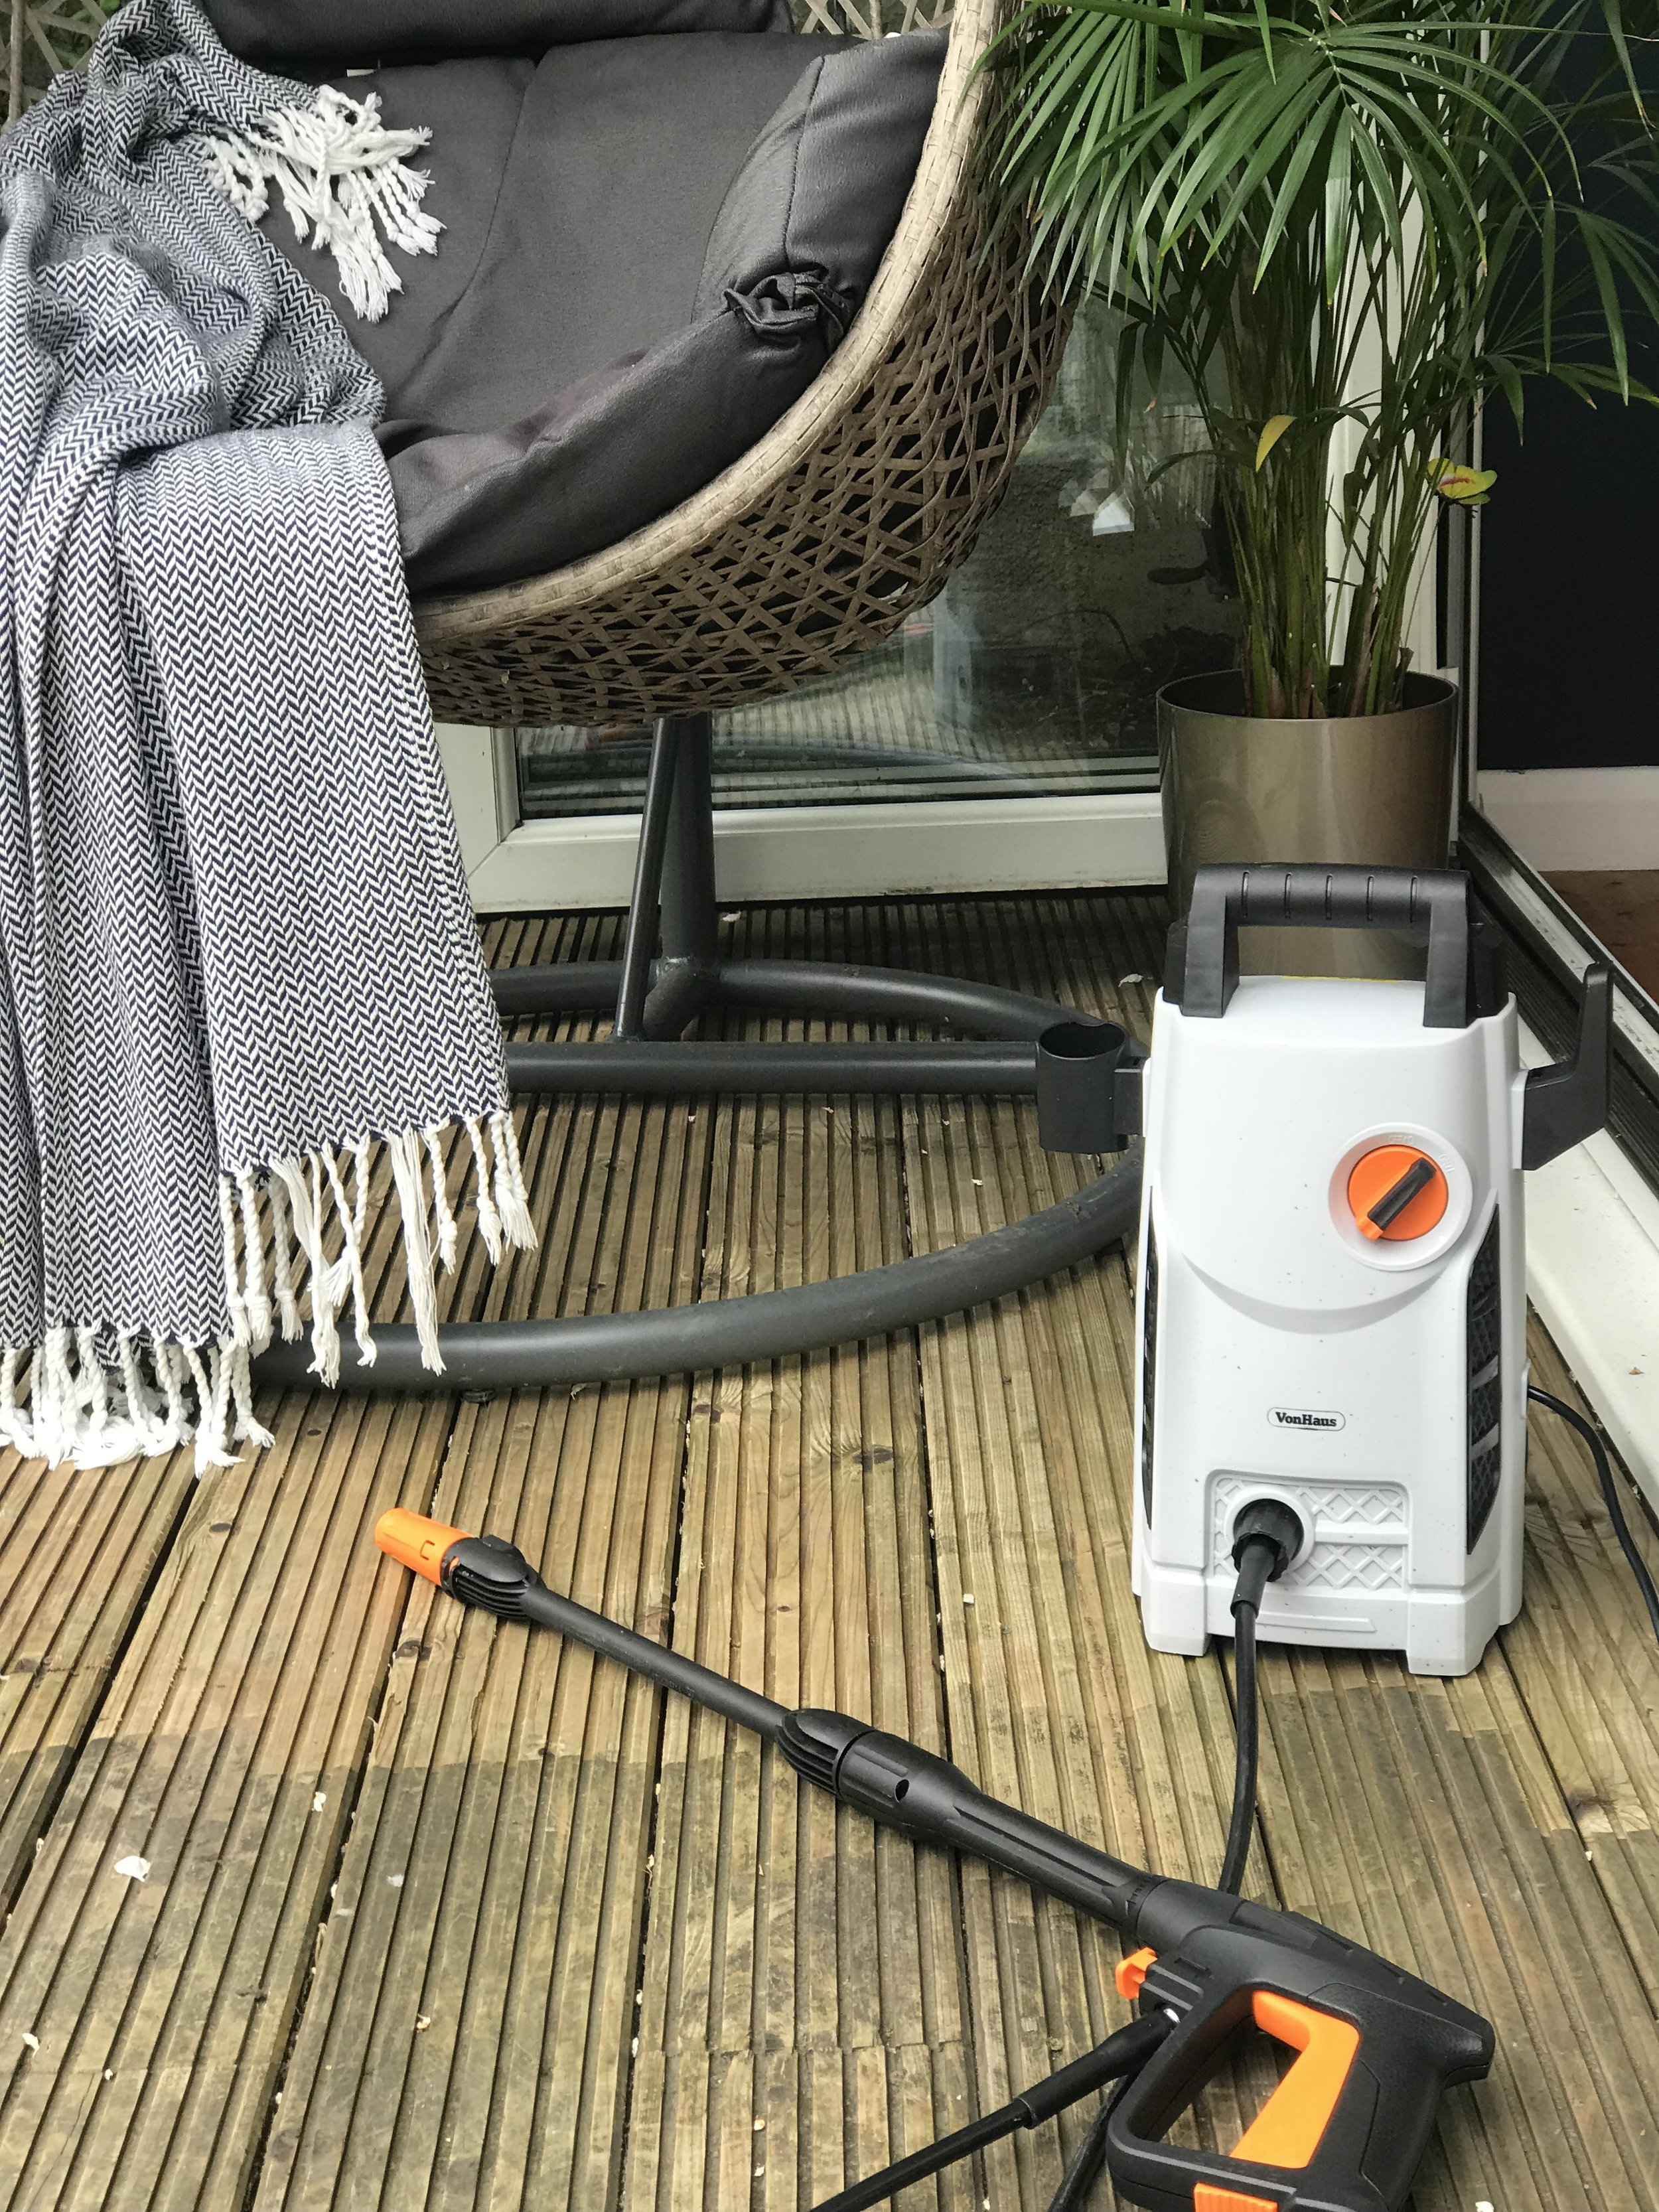 A bit of elbow grease and it took me just under 5 hours to clean the decking with this VonHaus Pressure Washer